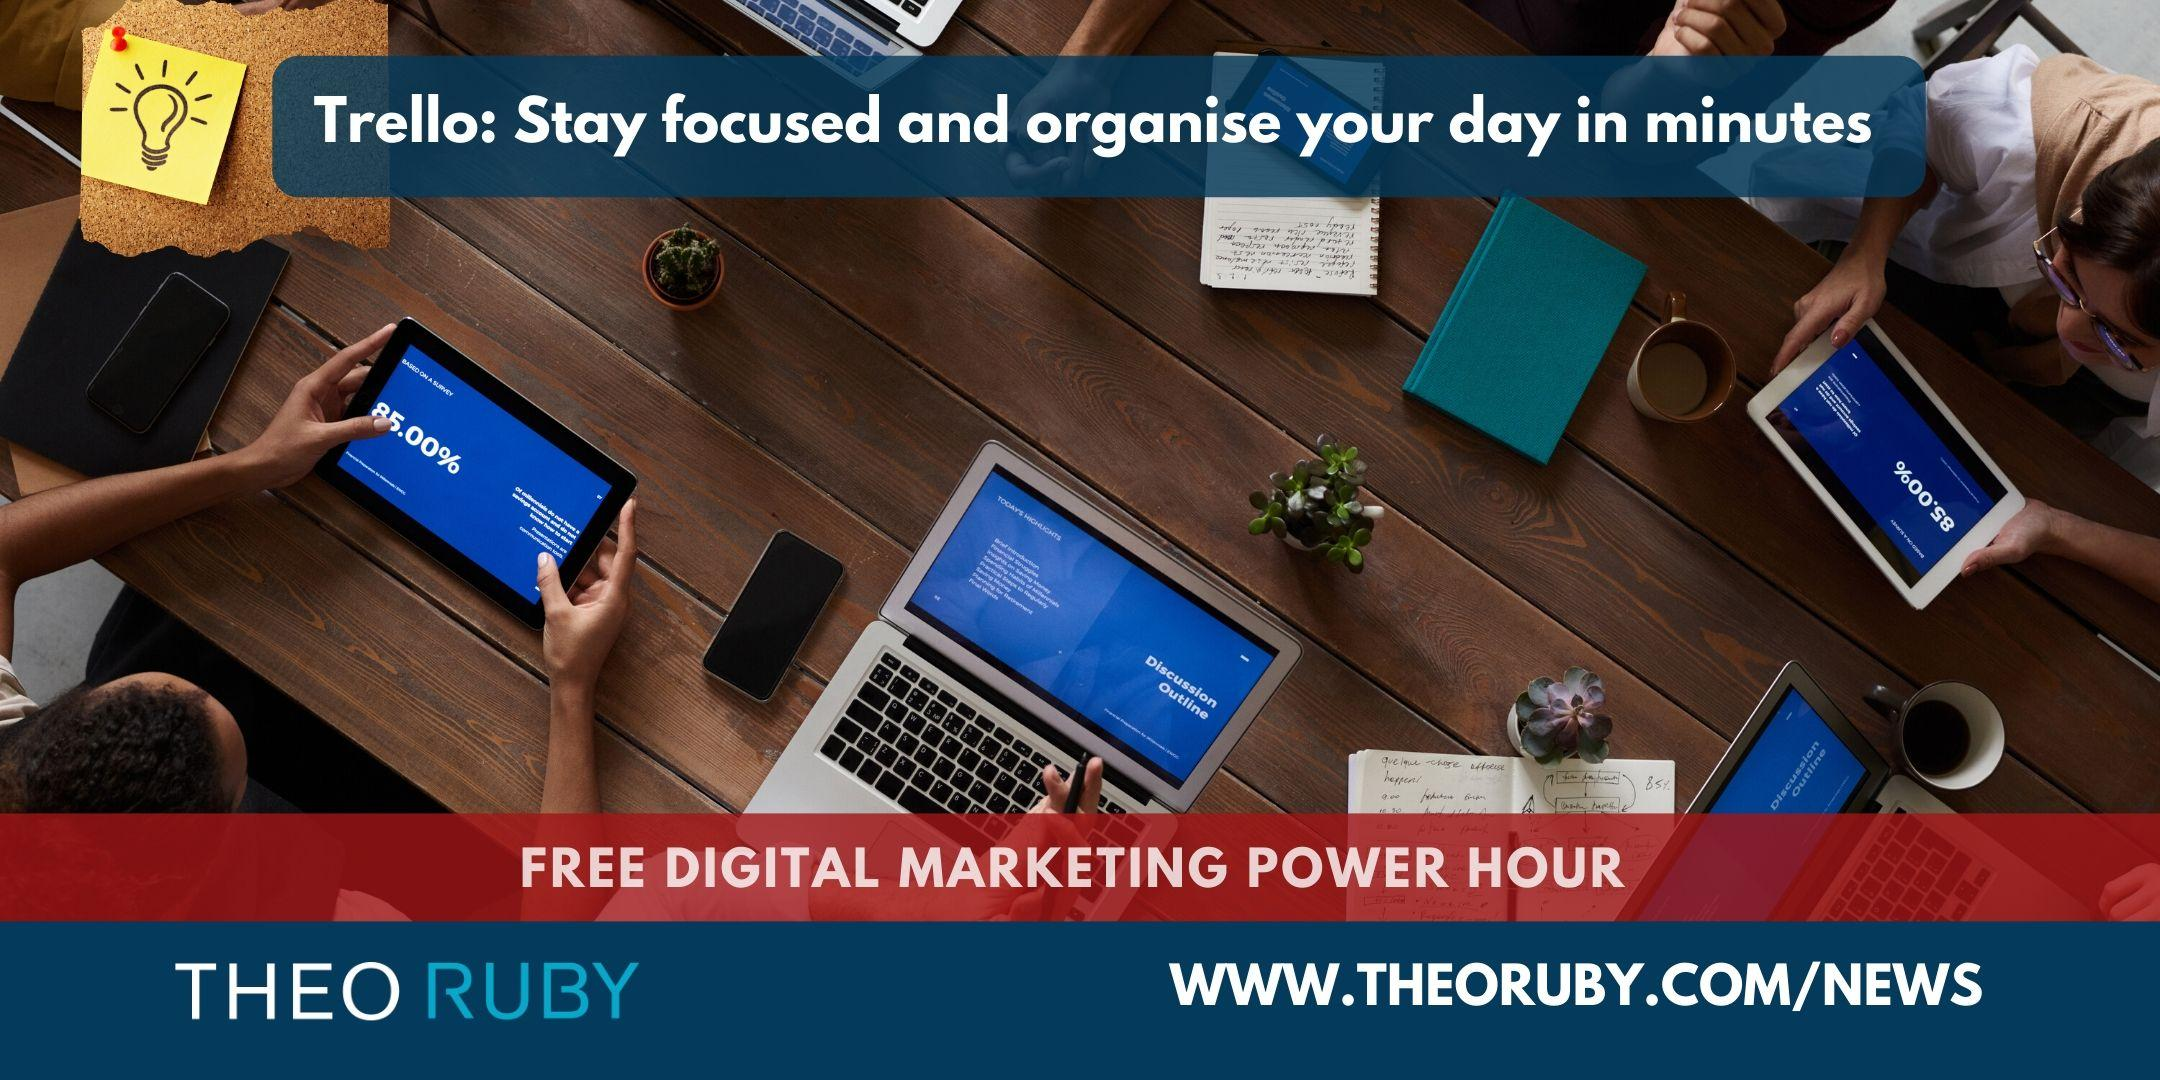 Power Hour 9 | Trello: Stay focused and organise your day in minutes 2